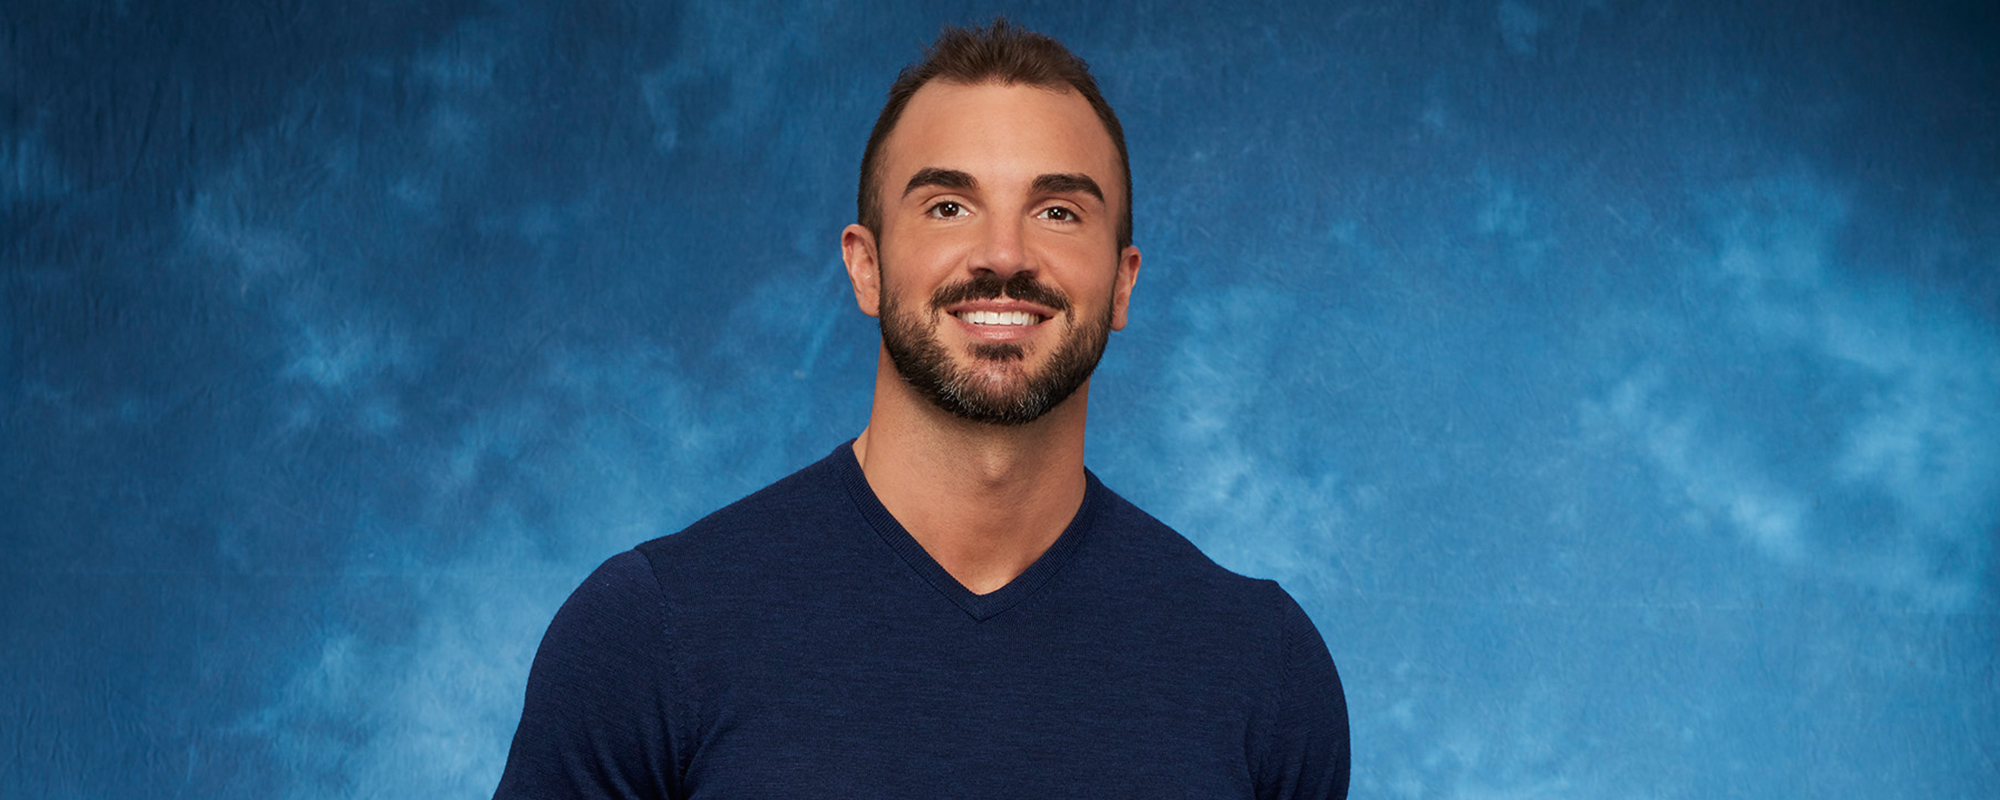 The Bachelorette Season 13's Matt